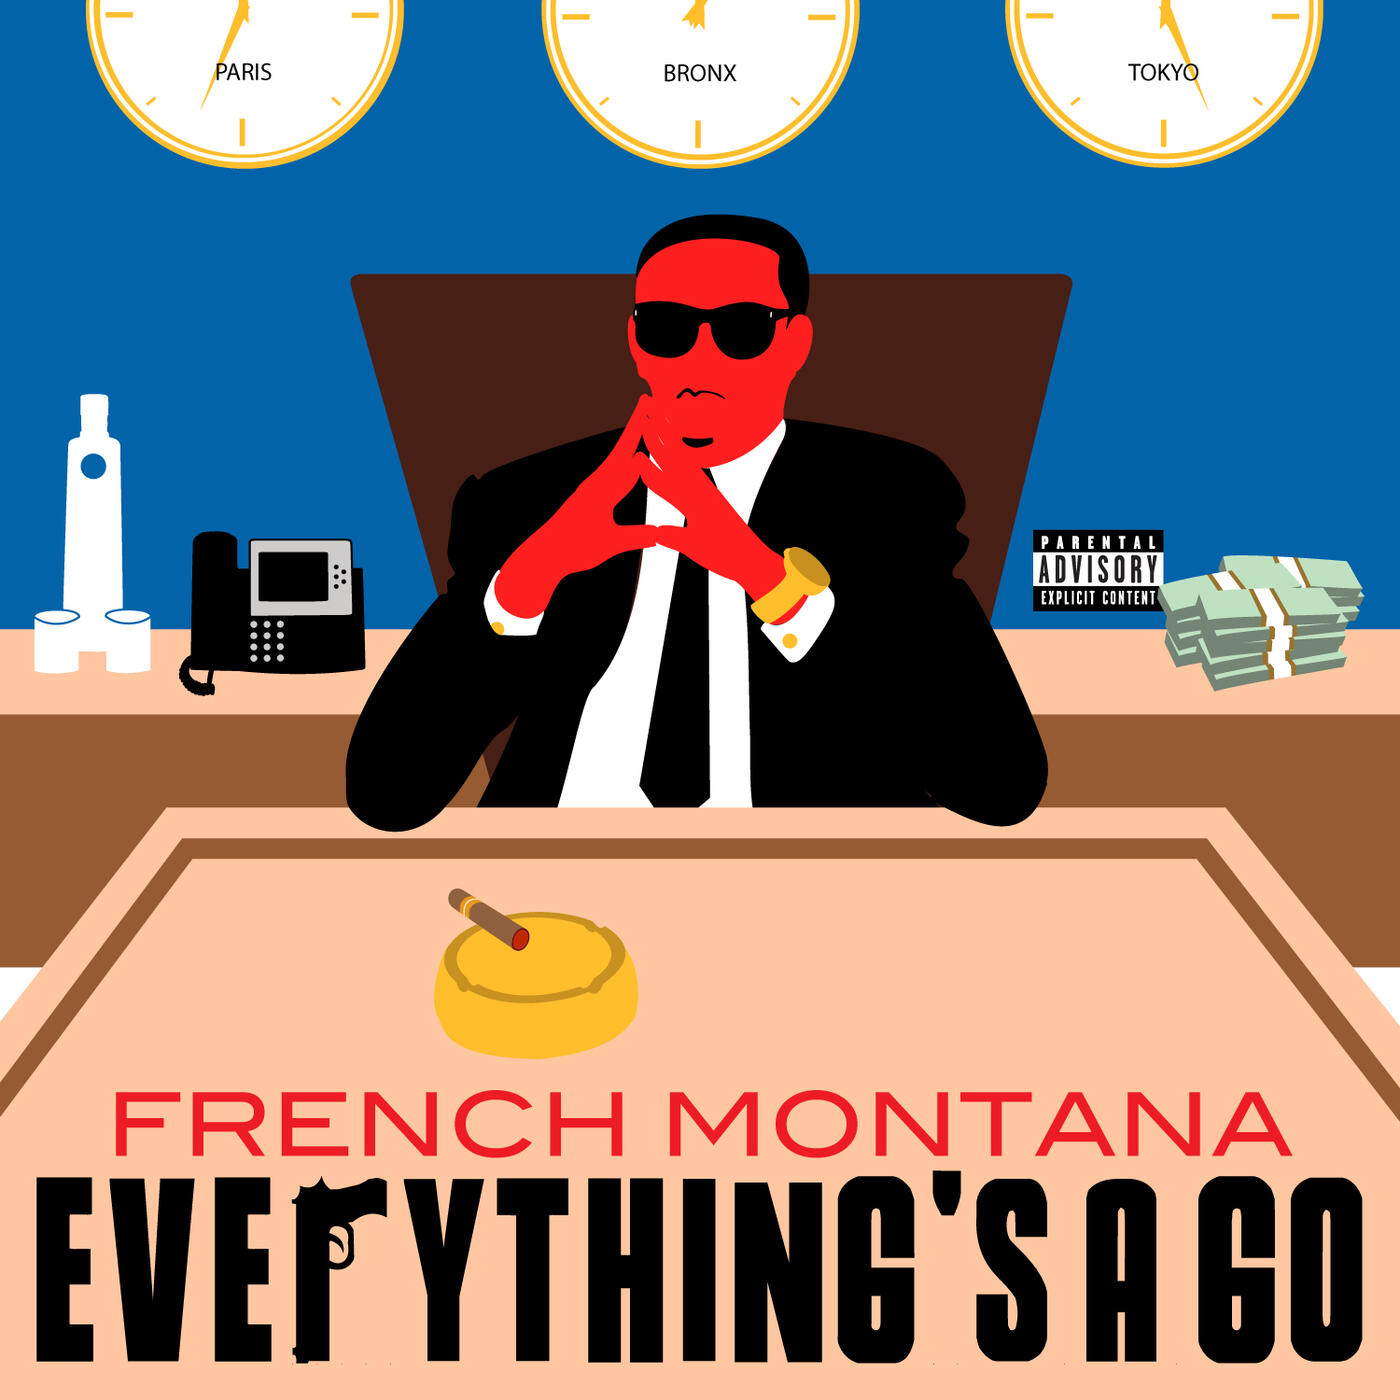 french montana money weed blow